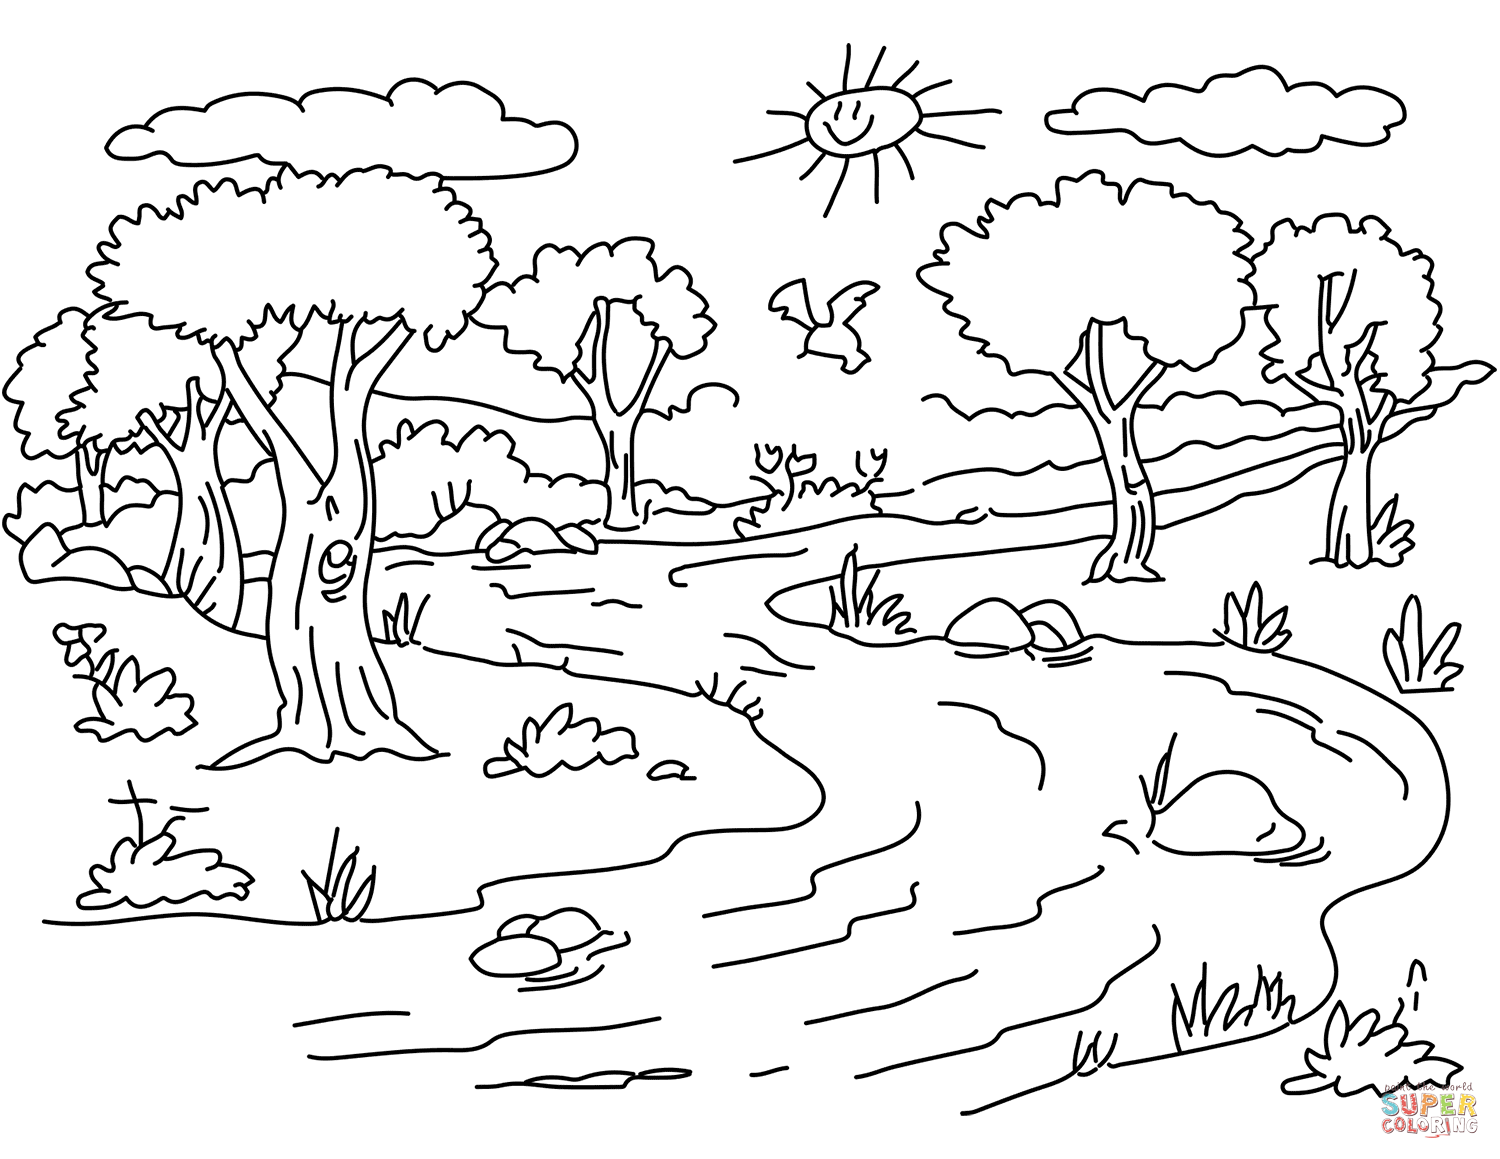 River Landscape Coloring Page Free Printable Coloring Pages Coloring Pages Nature Free Printable Coloring Pages Coloring Pages